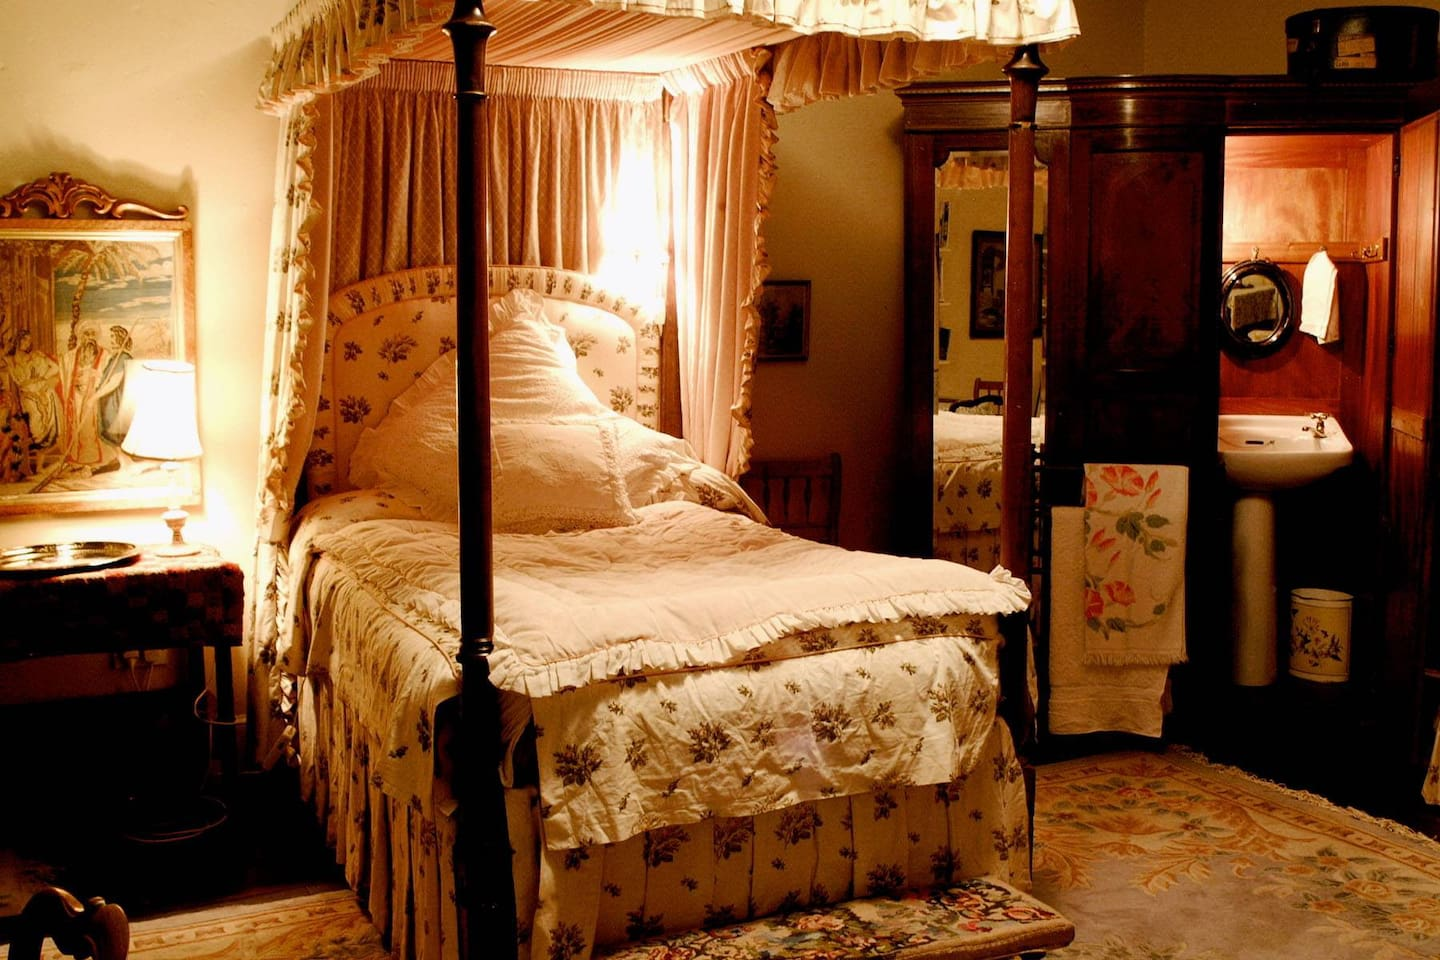 This room is €80 per night. The antique four-poster is in a spacious room. It has a comfortable double bed. Have the treat of breakfast brought to your room, in courses.  All our rooms are supplied with complimentary bottled water, tissues, chocolate and